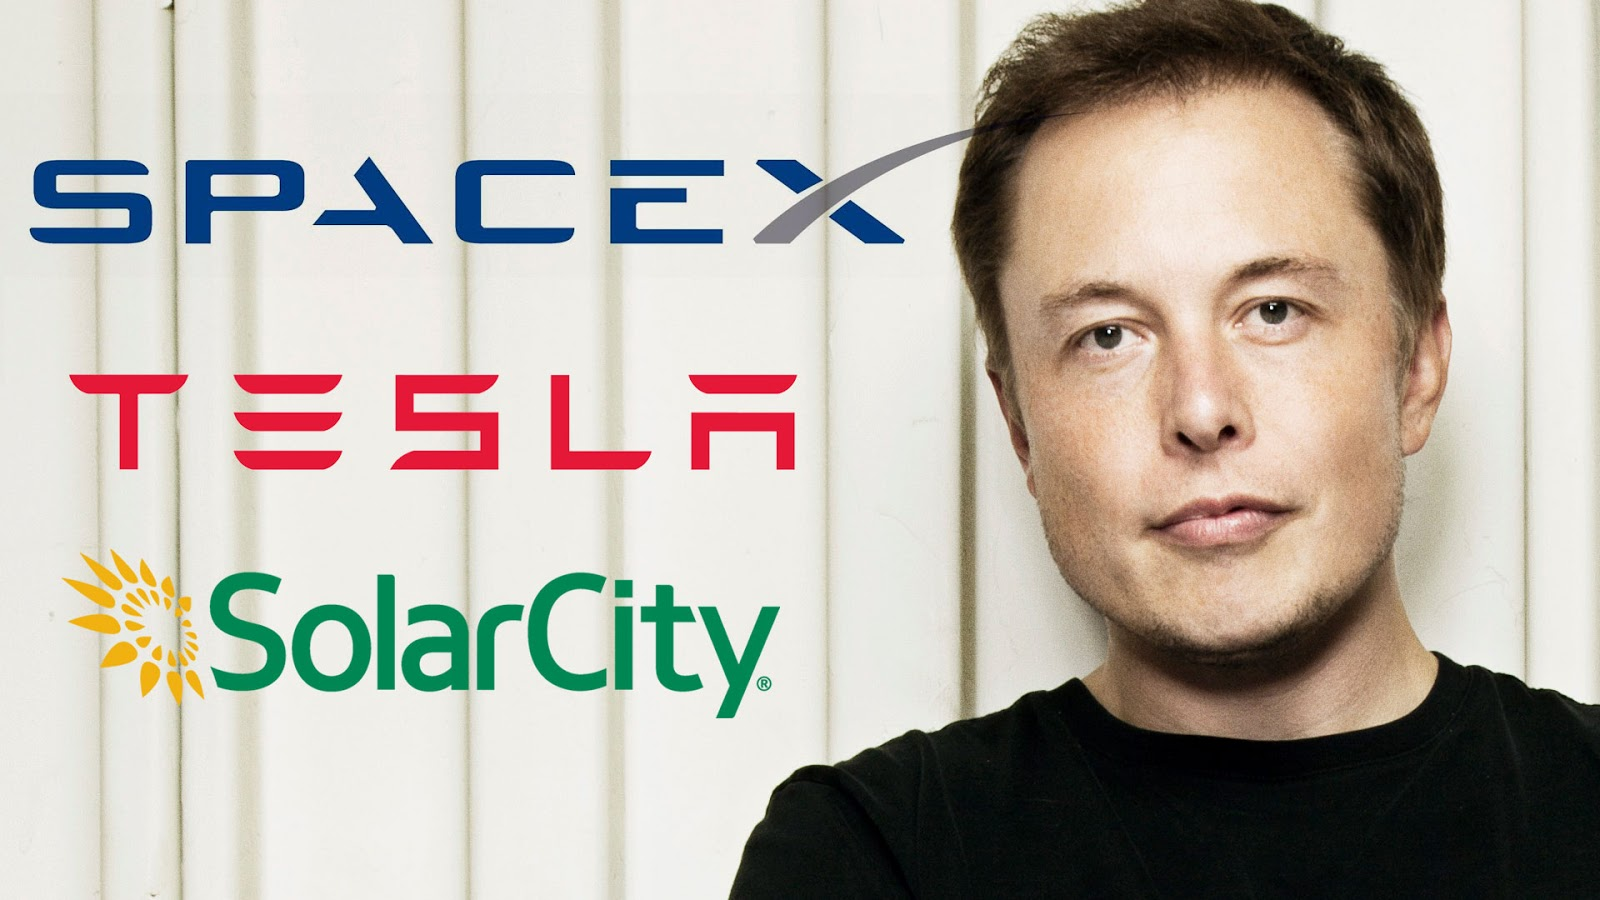 The Future of Humanity According To Elon Musk (infographic)